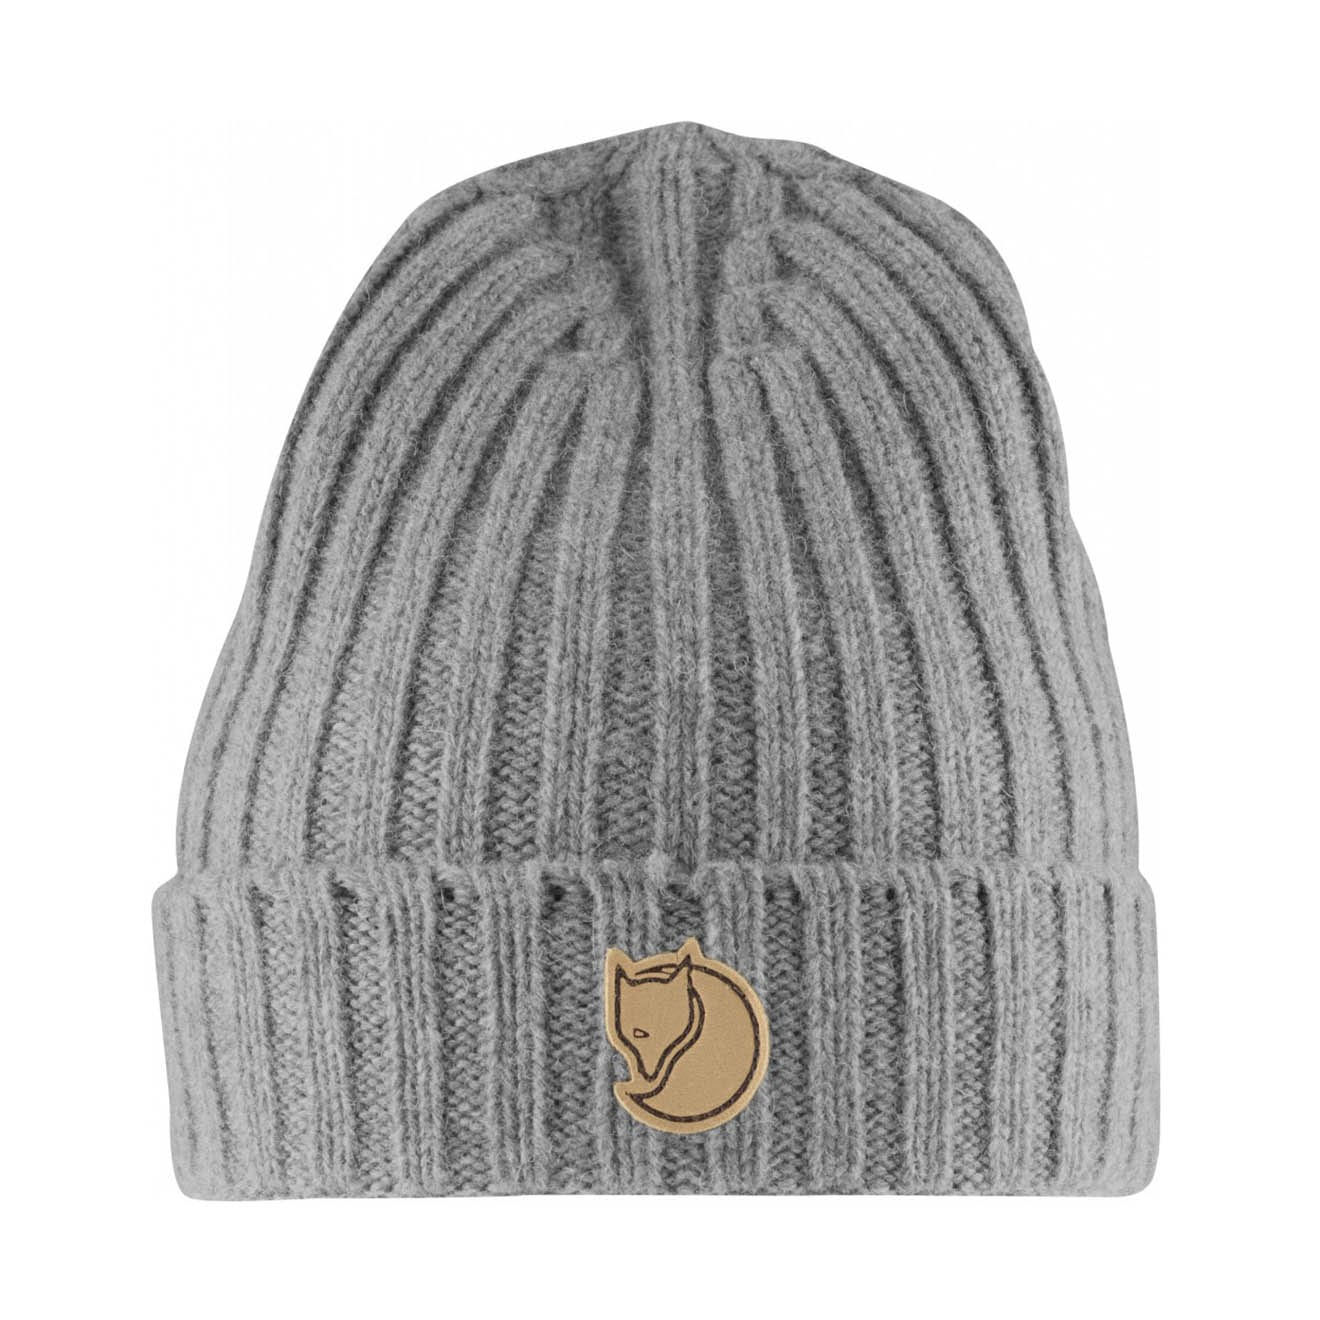 Fjallraven Re-Wool Hat Grey - The Sporting Lodge 2b36cd3ae06